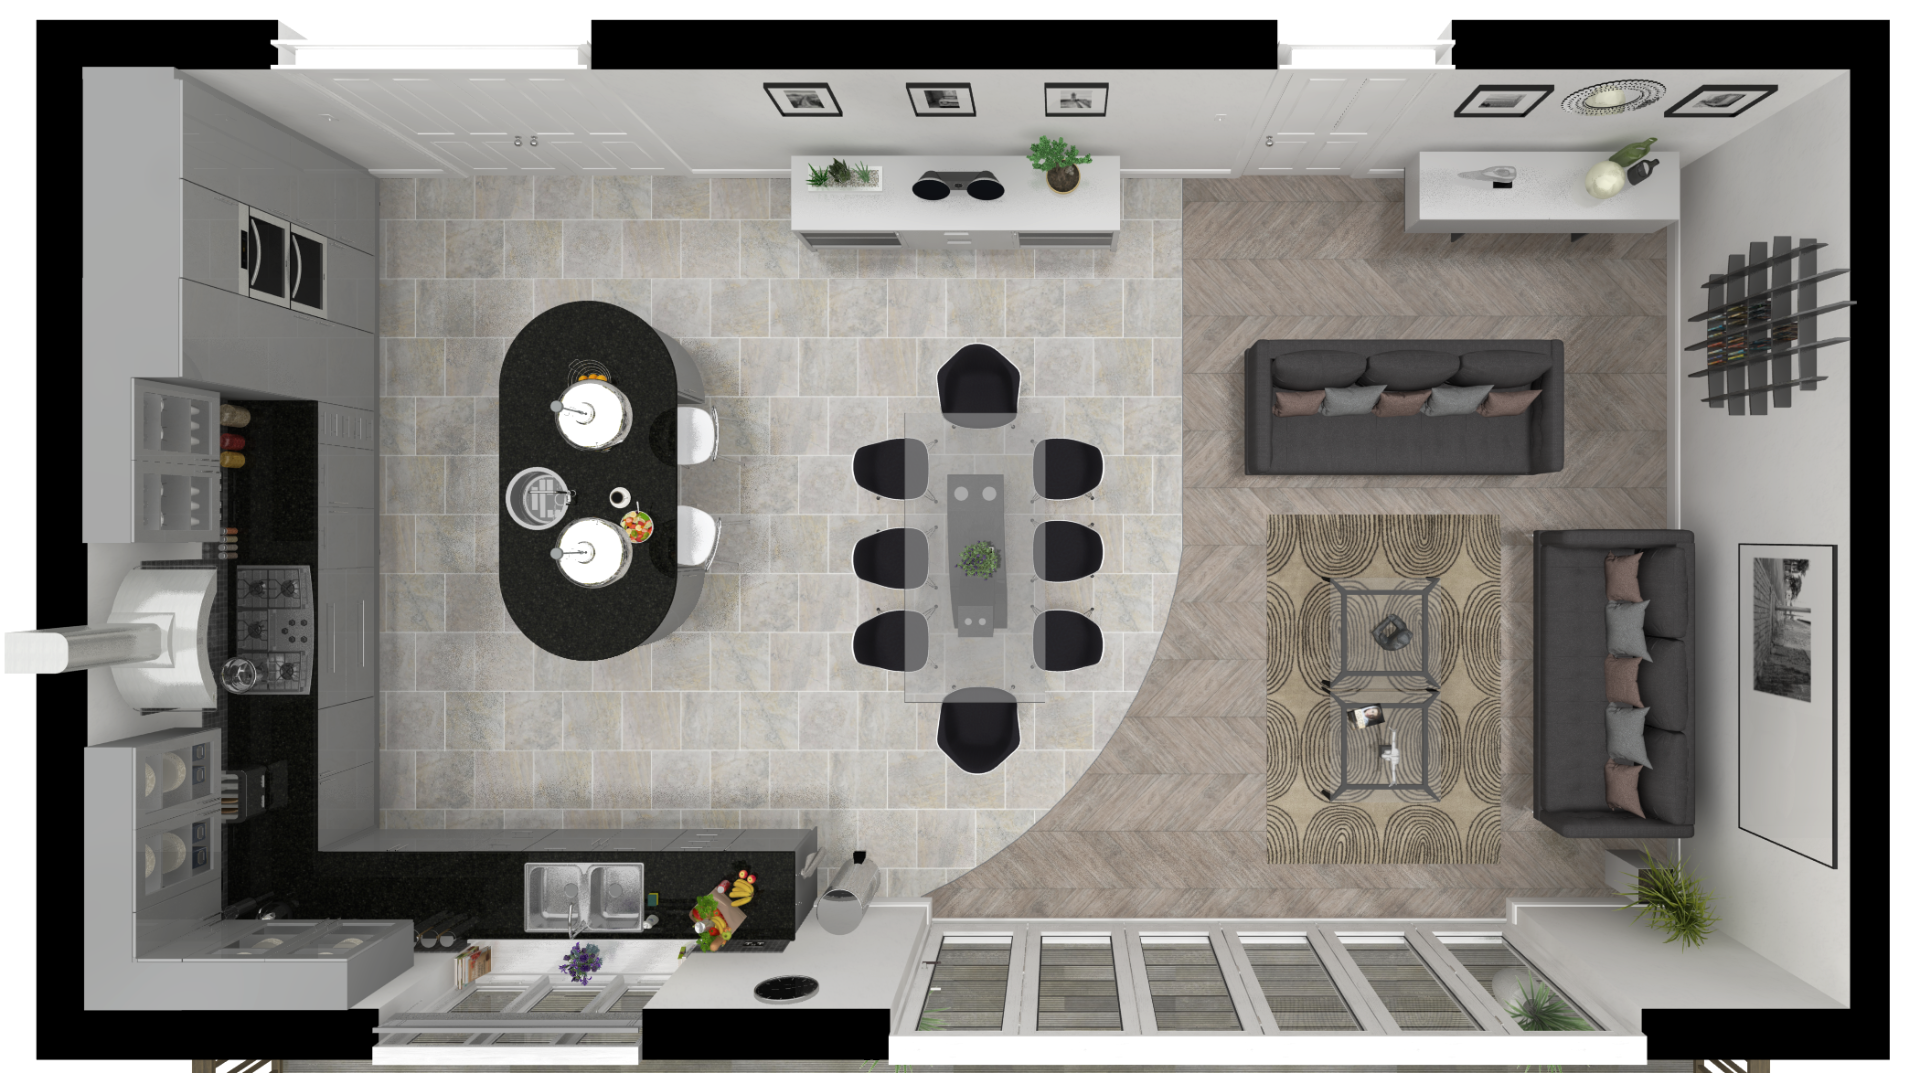 kitchen-plan-view-render-pp.png